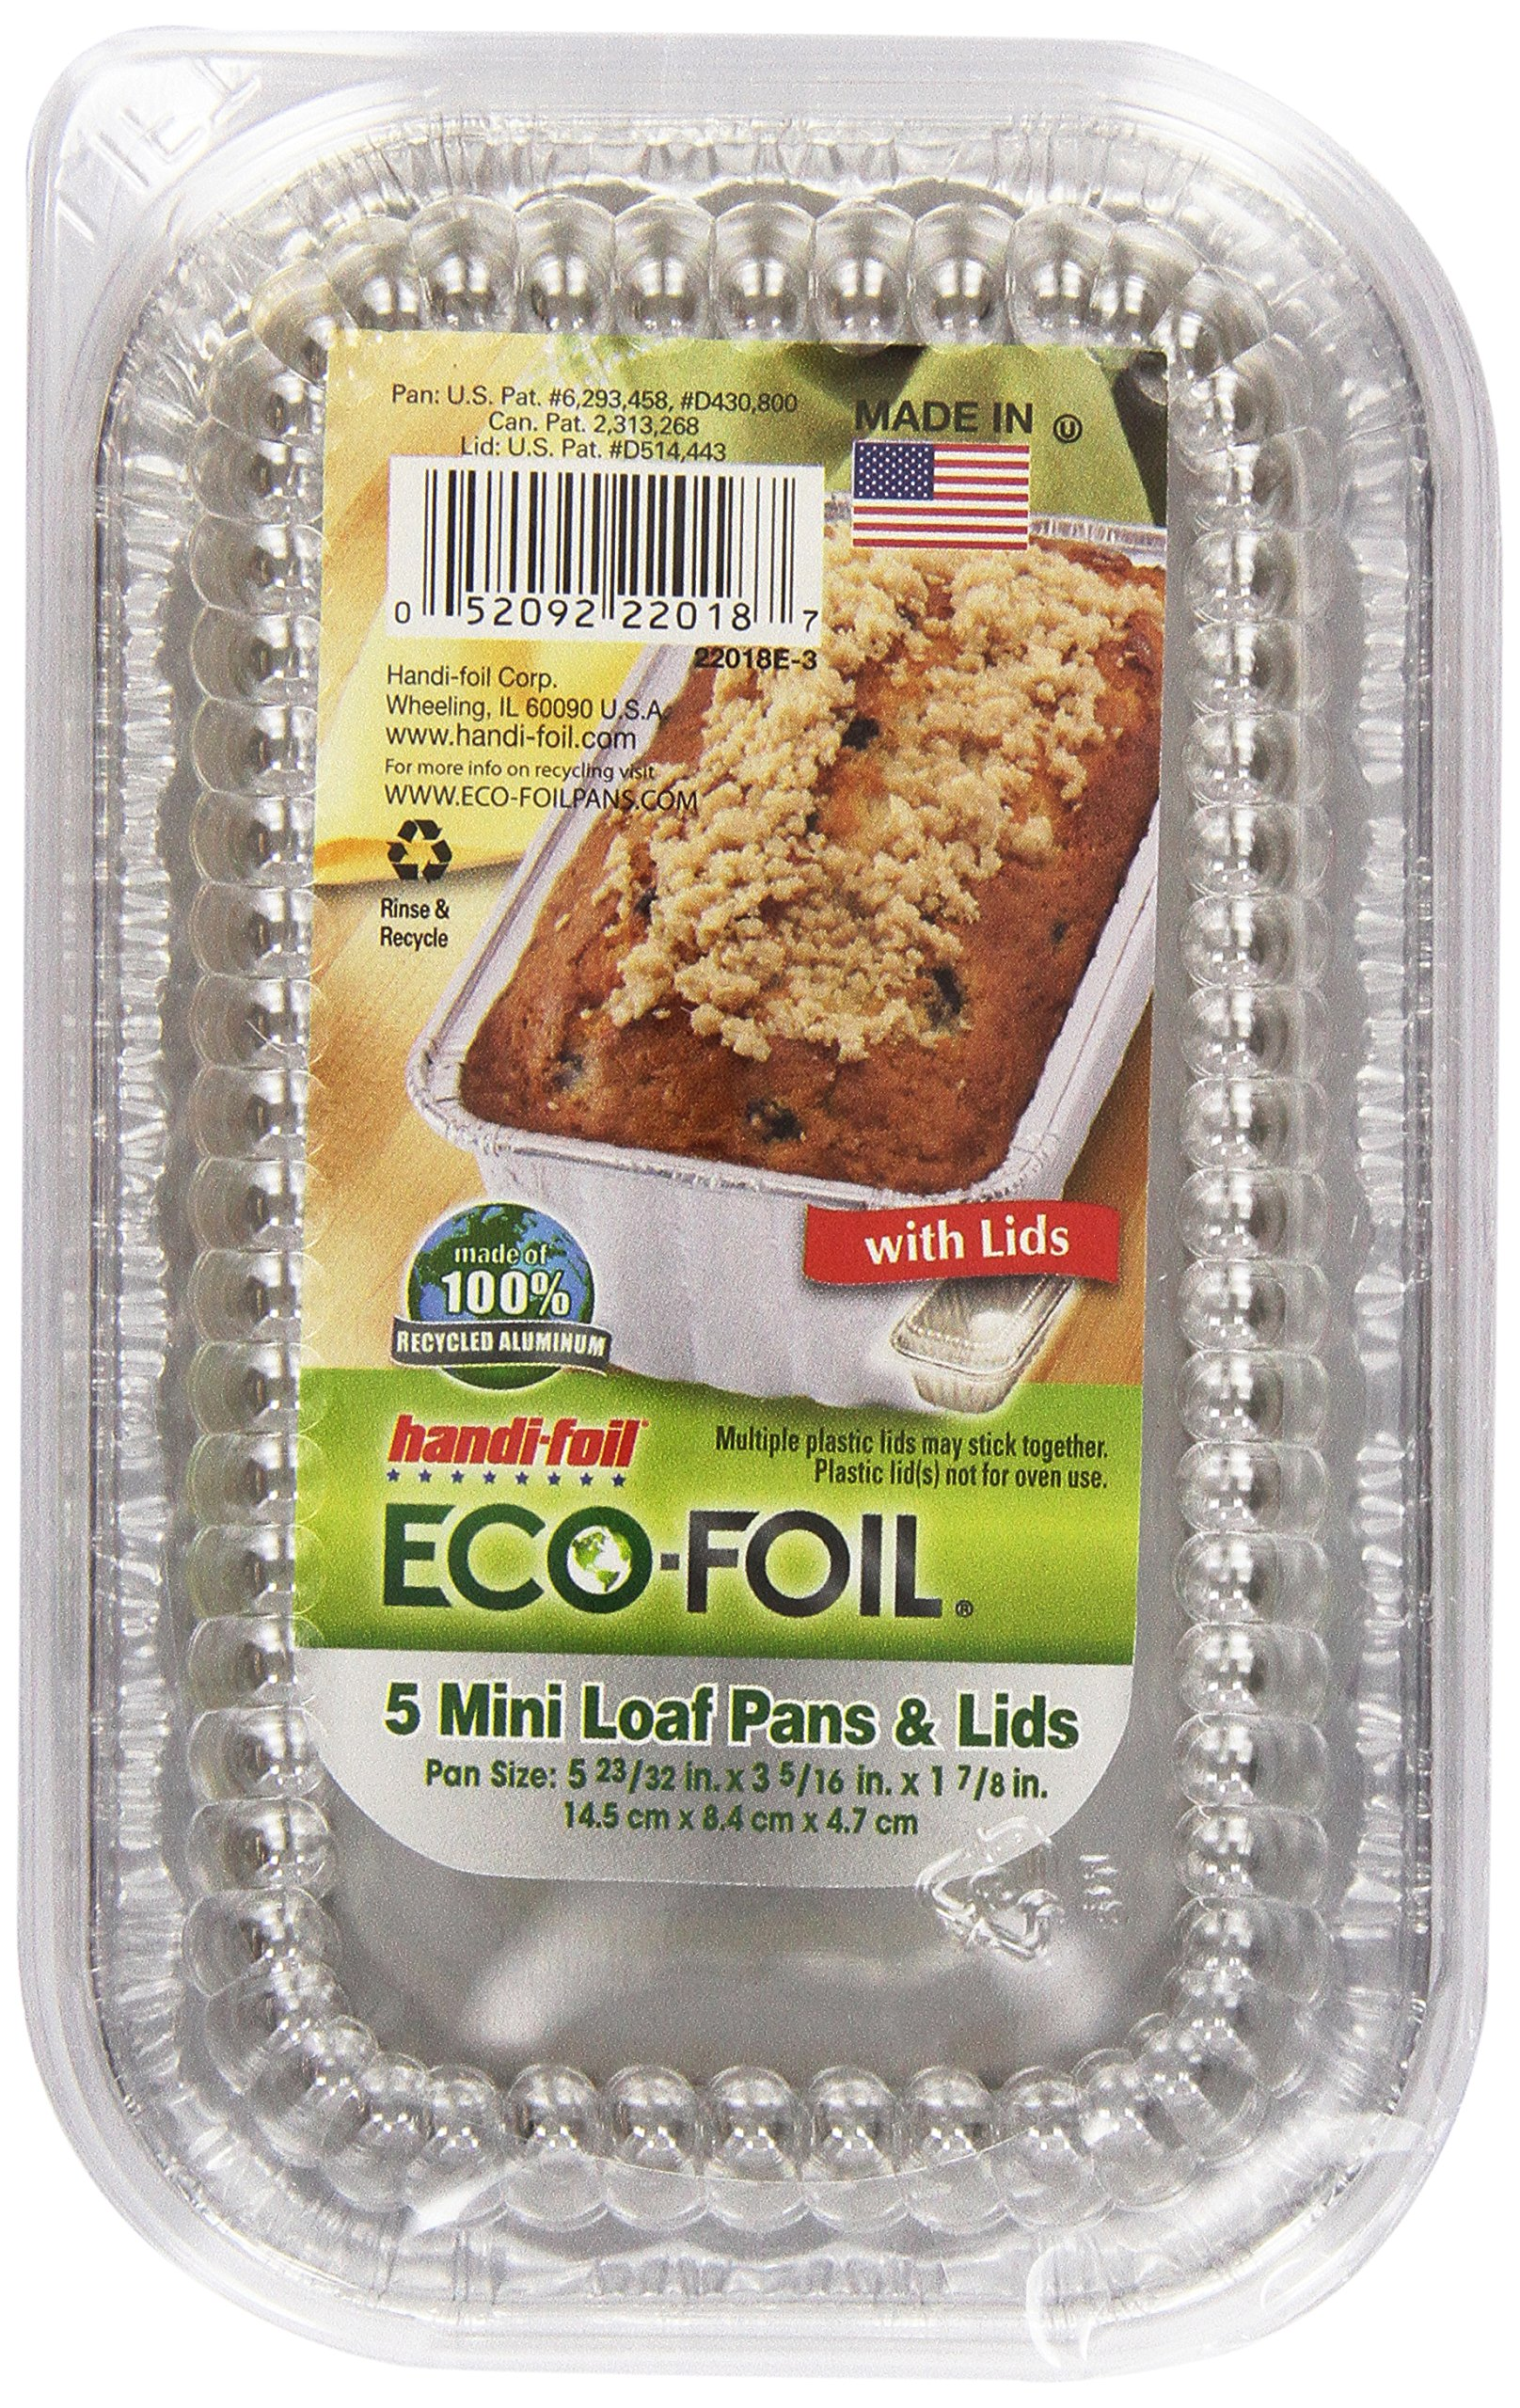 Cook-N-Carry Loaf Pan 1 lb, w/Lids, 5 ct